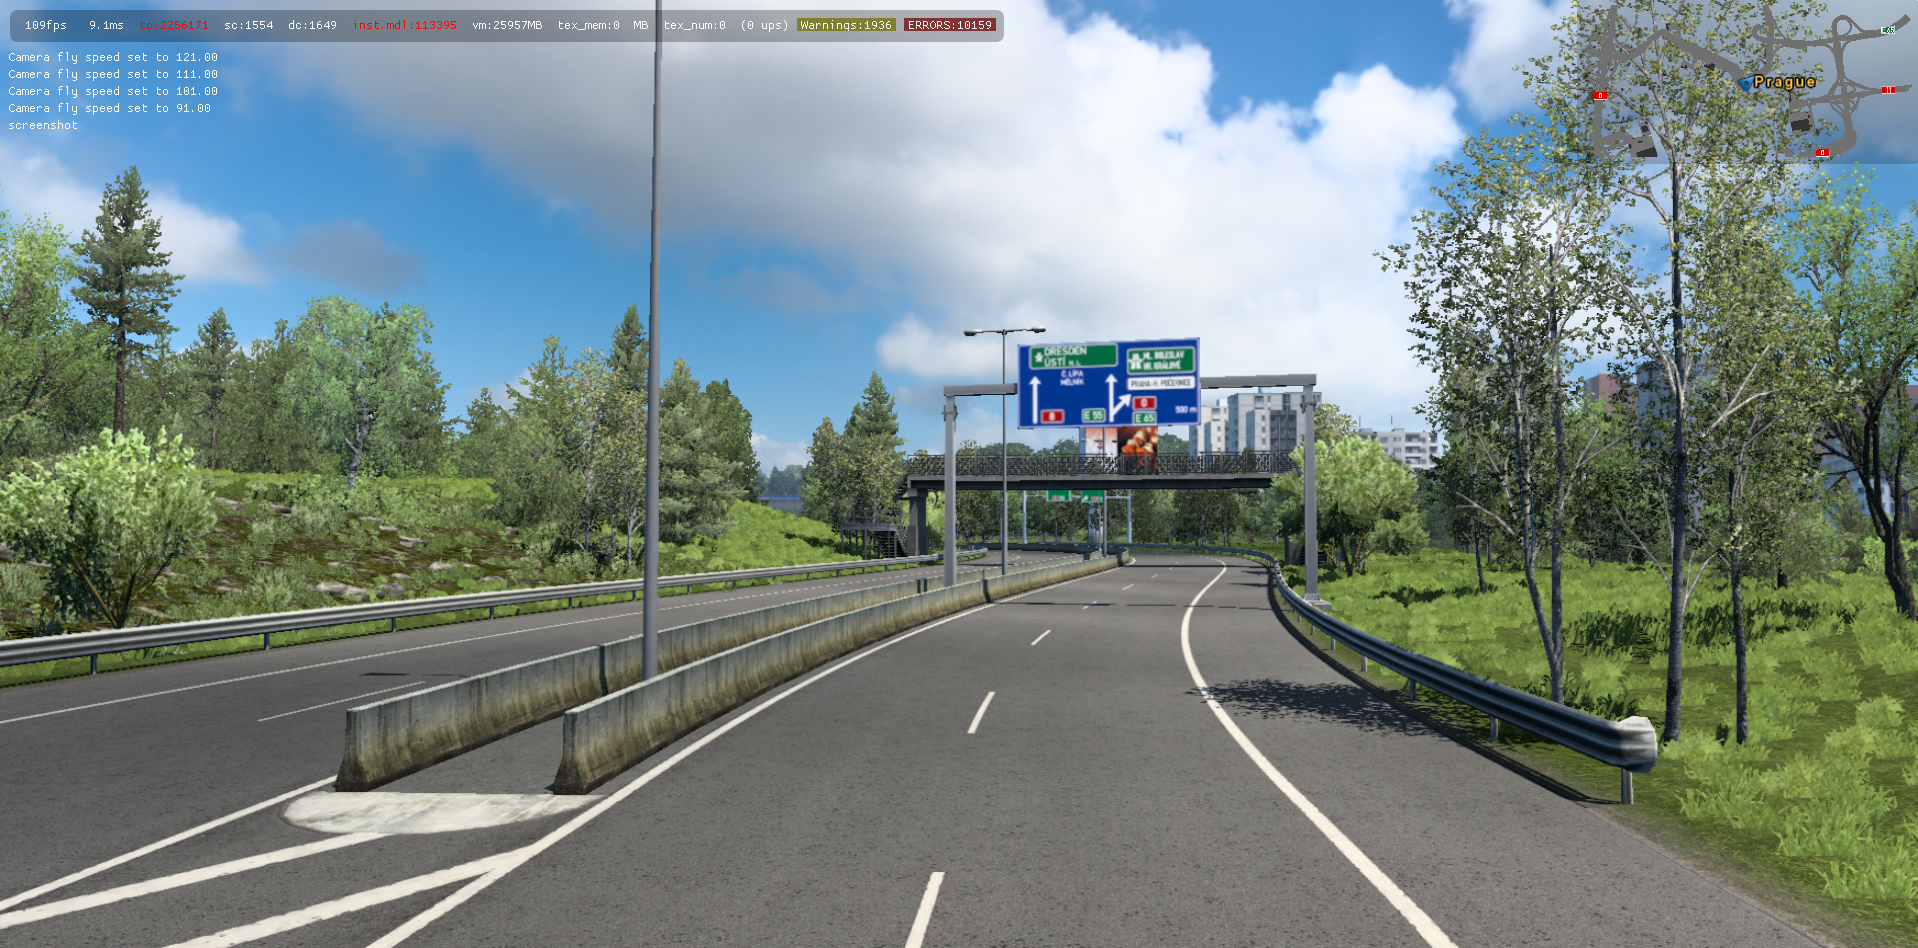 ets2_20210801_003853_00.png